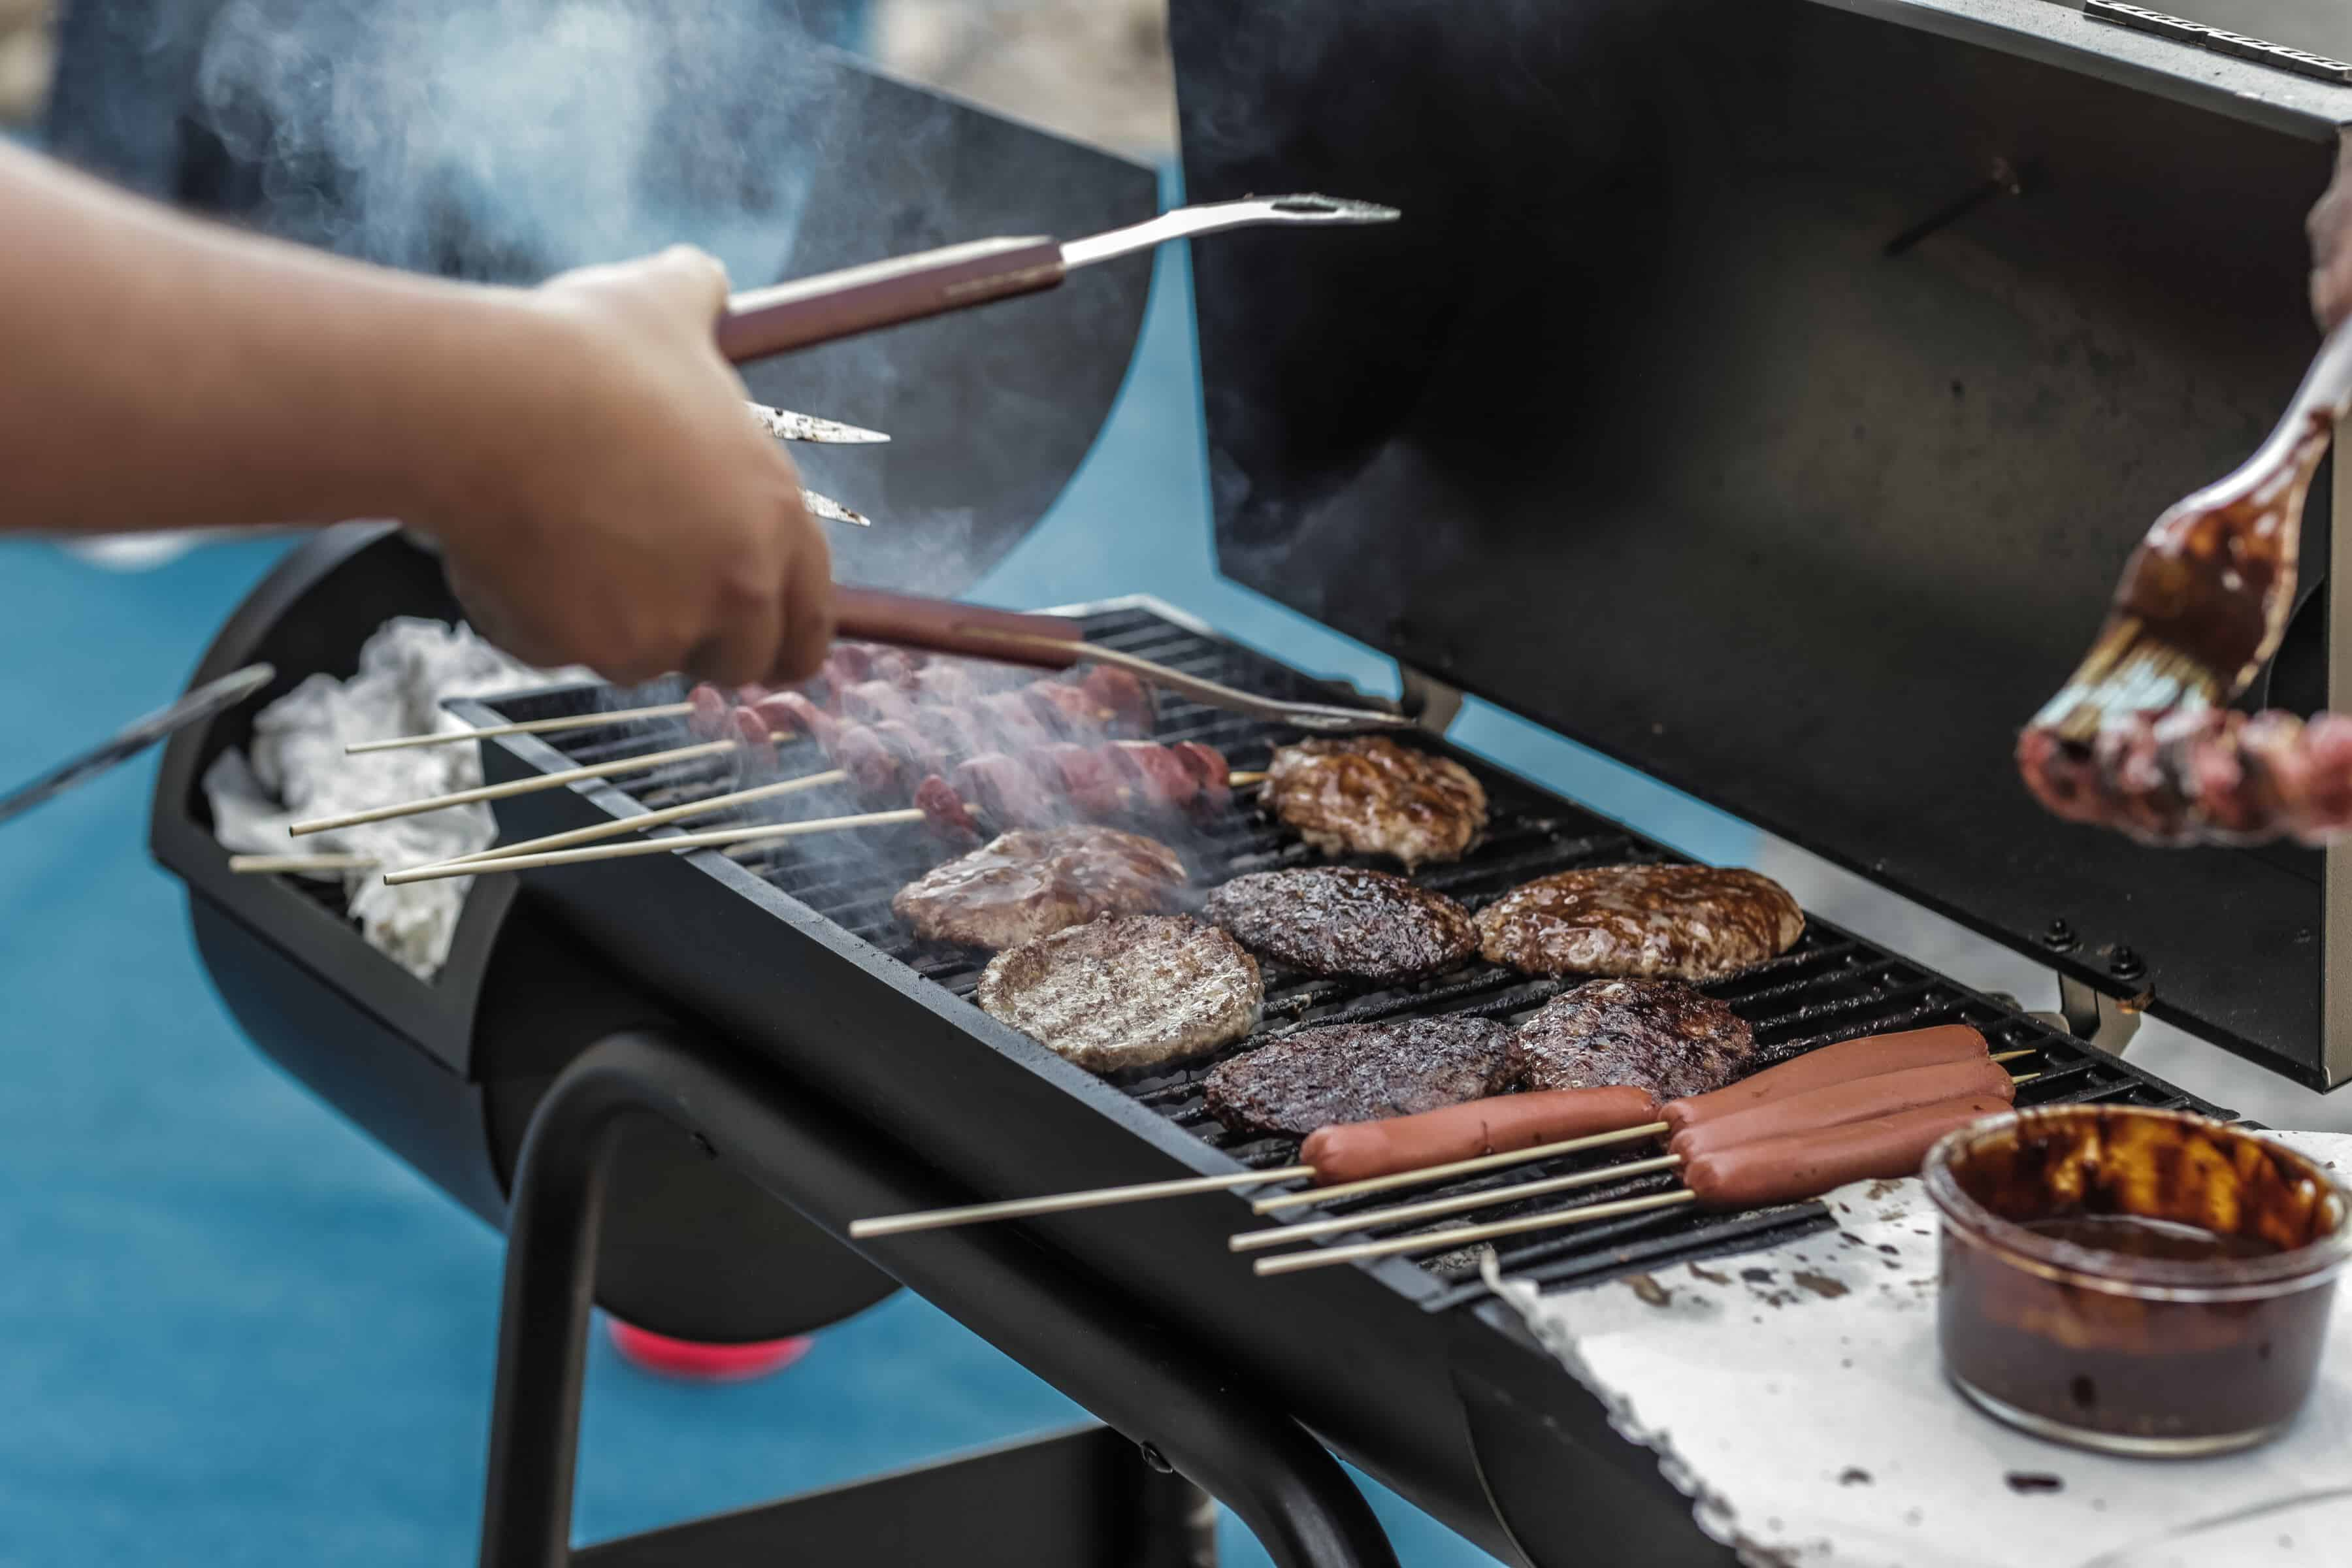 a person is grilling sausages and meat with bbq smoker